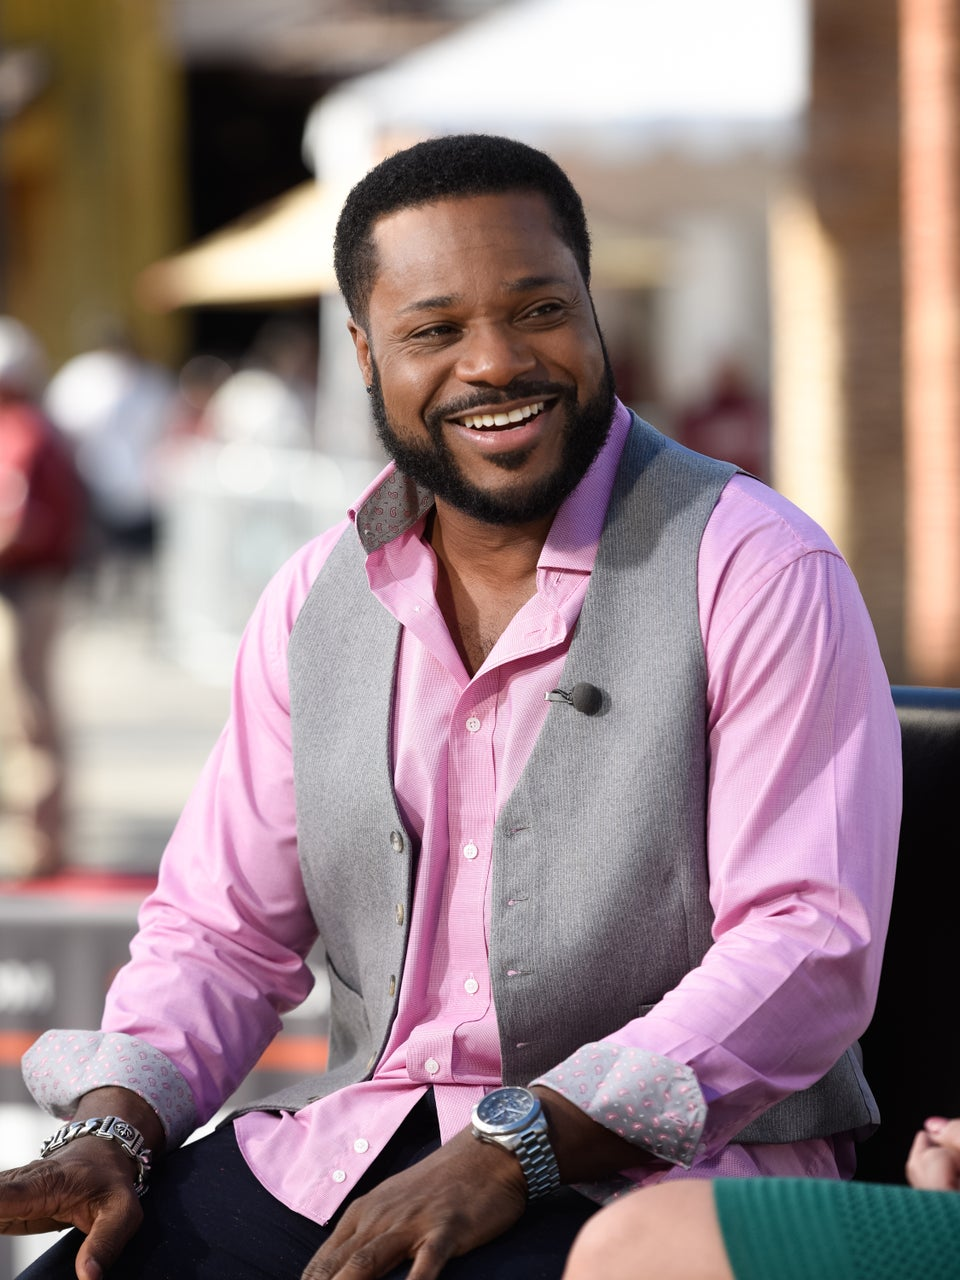 Malcolm-Jamal Warner Enjoyed Nap Time With His New Bundle Of Joy